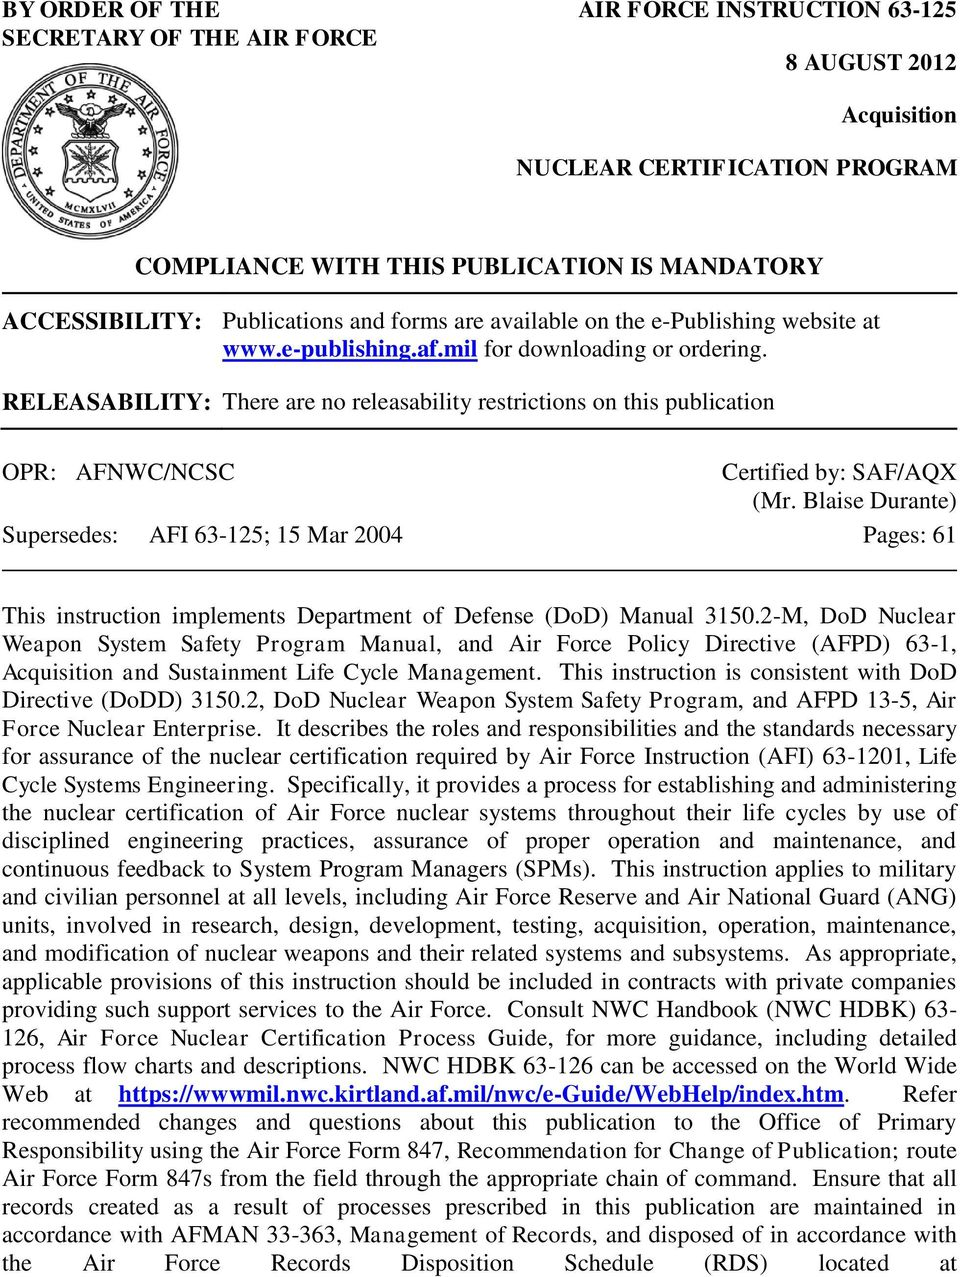 Af Form 847 Administrative Changes To Afi 33 360 Publications And ...